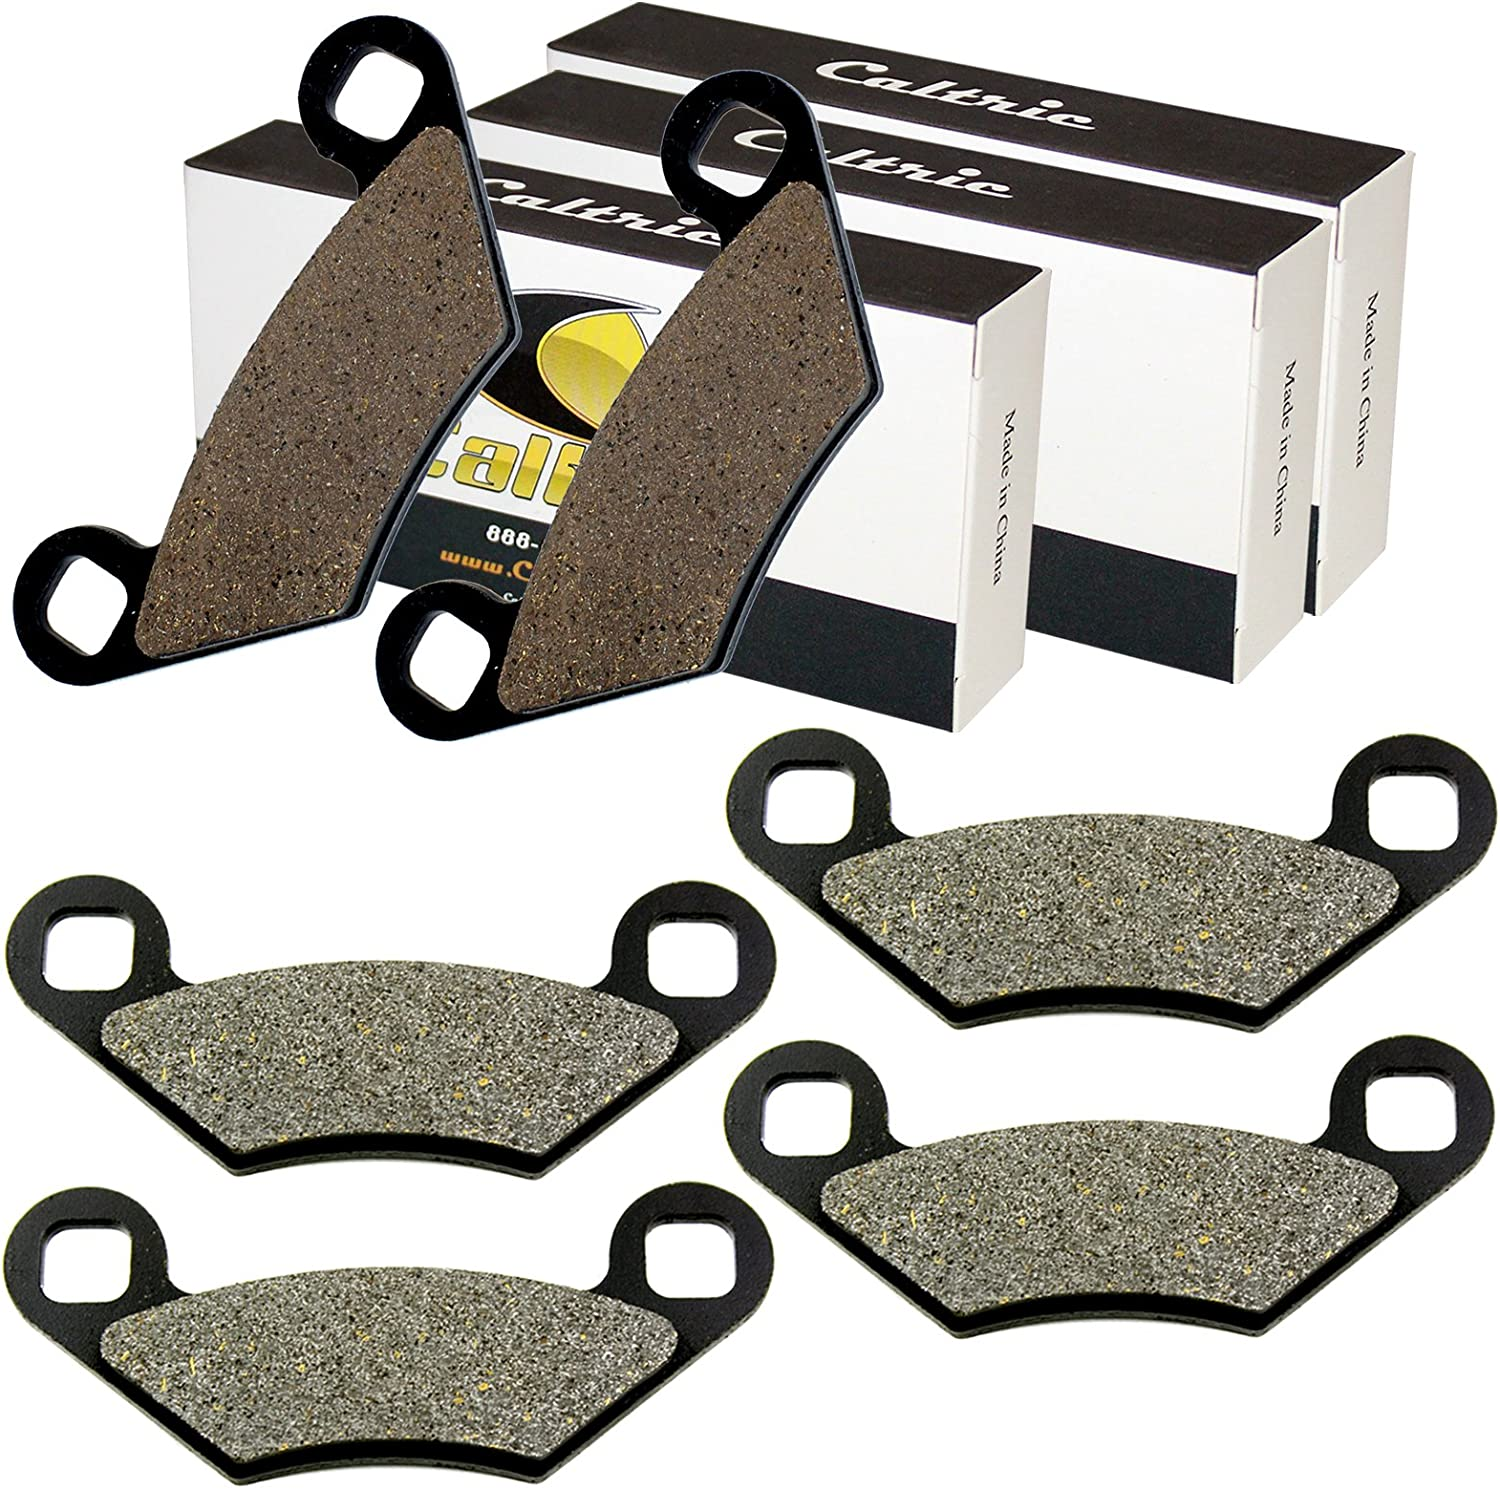 Front Rear Brake Pads For Polaris Sportsman 300 4X4 2008 2009 2010